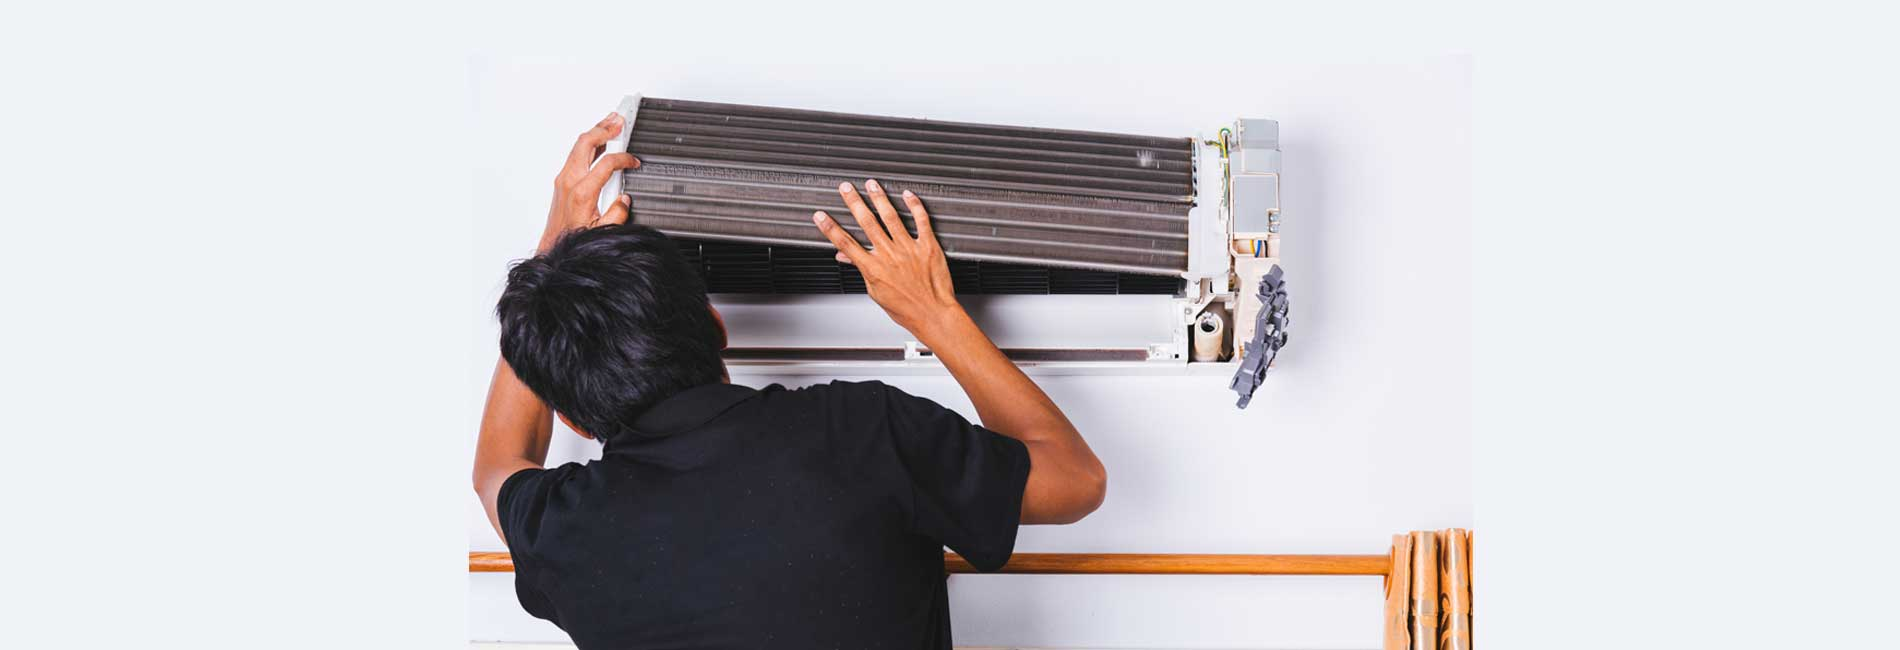 Air Conditioner Service in Surapet